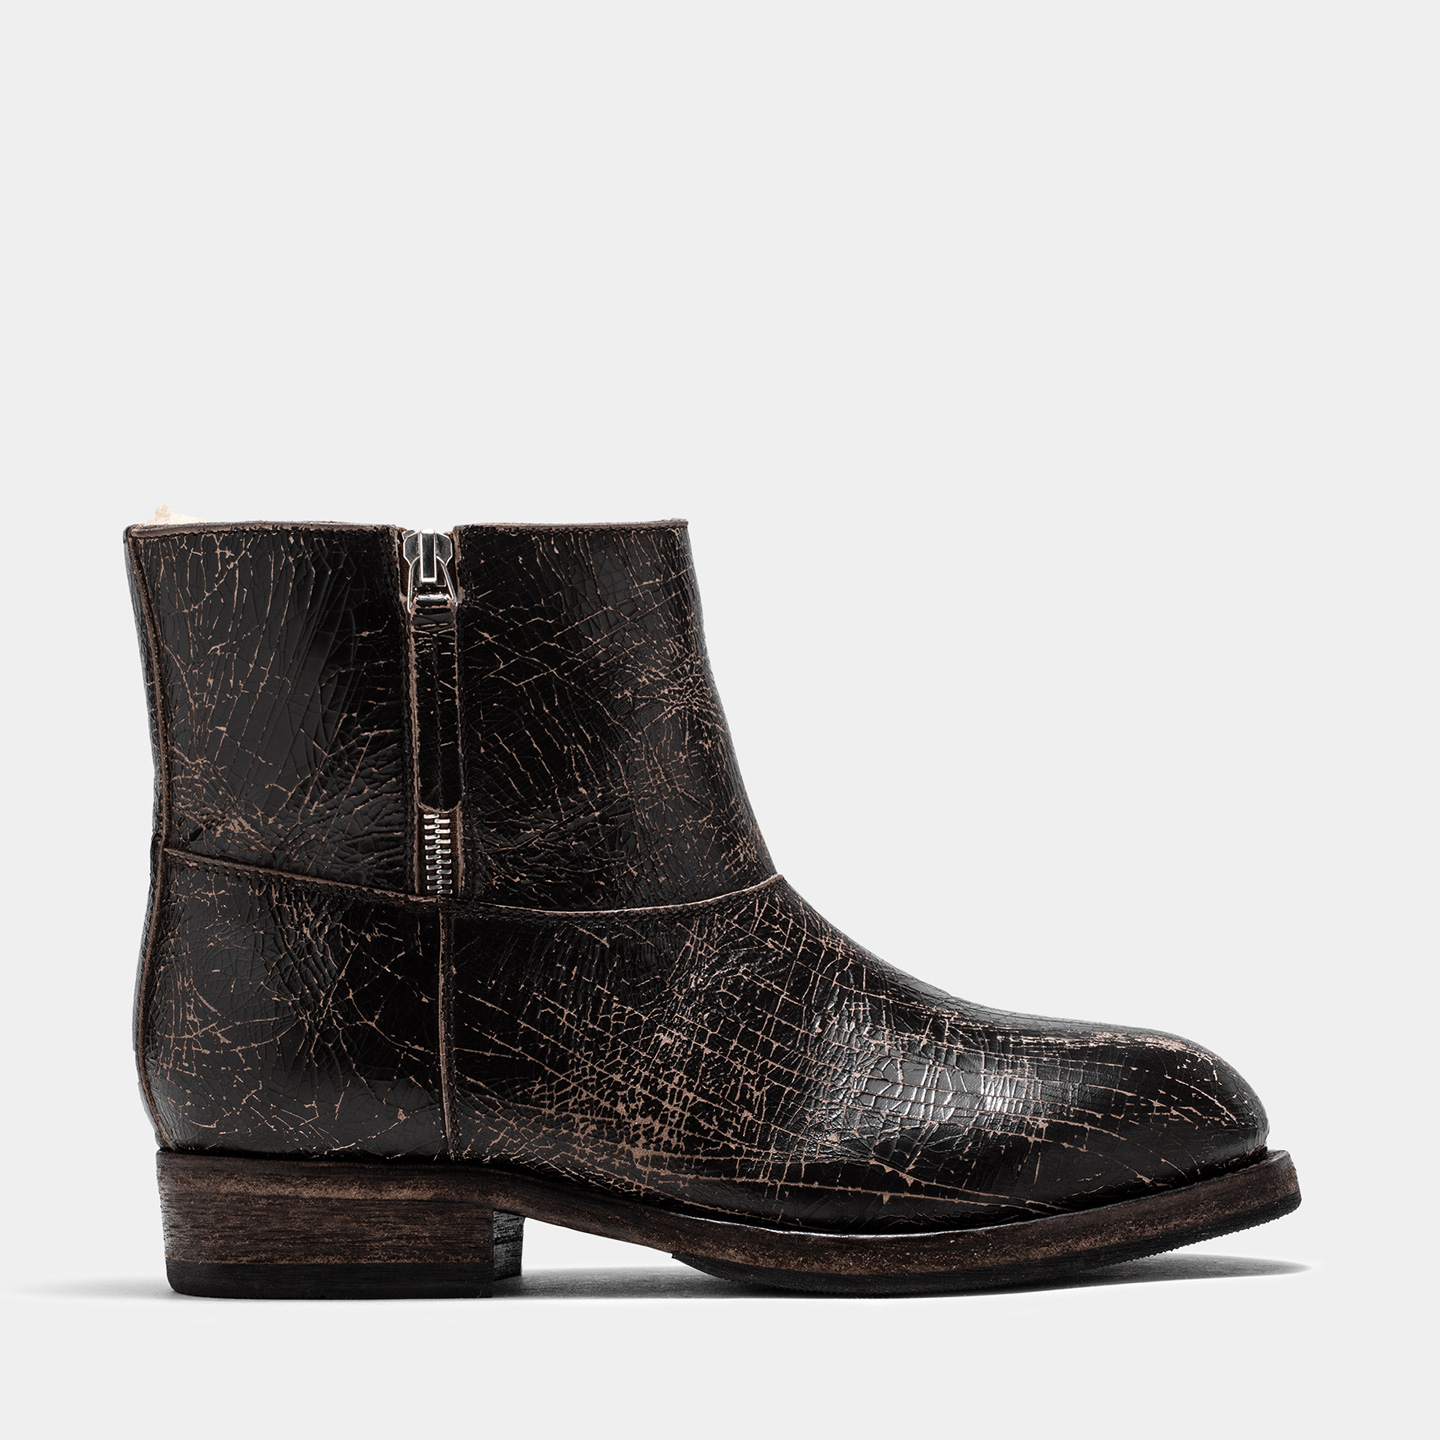 BUTTERO: LOU BIKER ANKLE BOOTS IN DARK BROWN CRACKLE EFFECT LEATHER